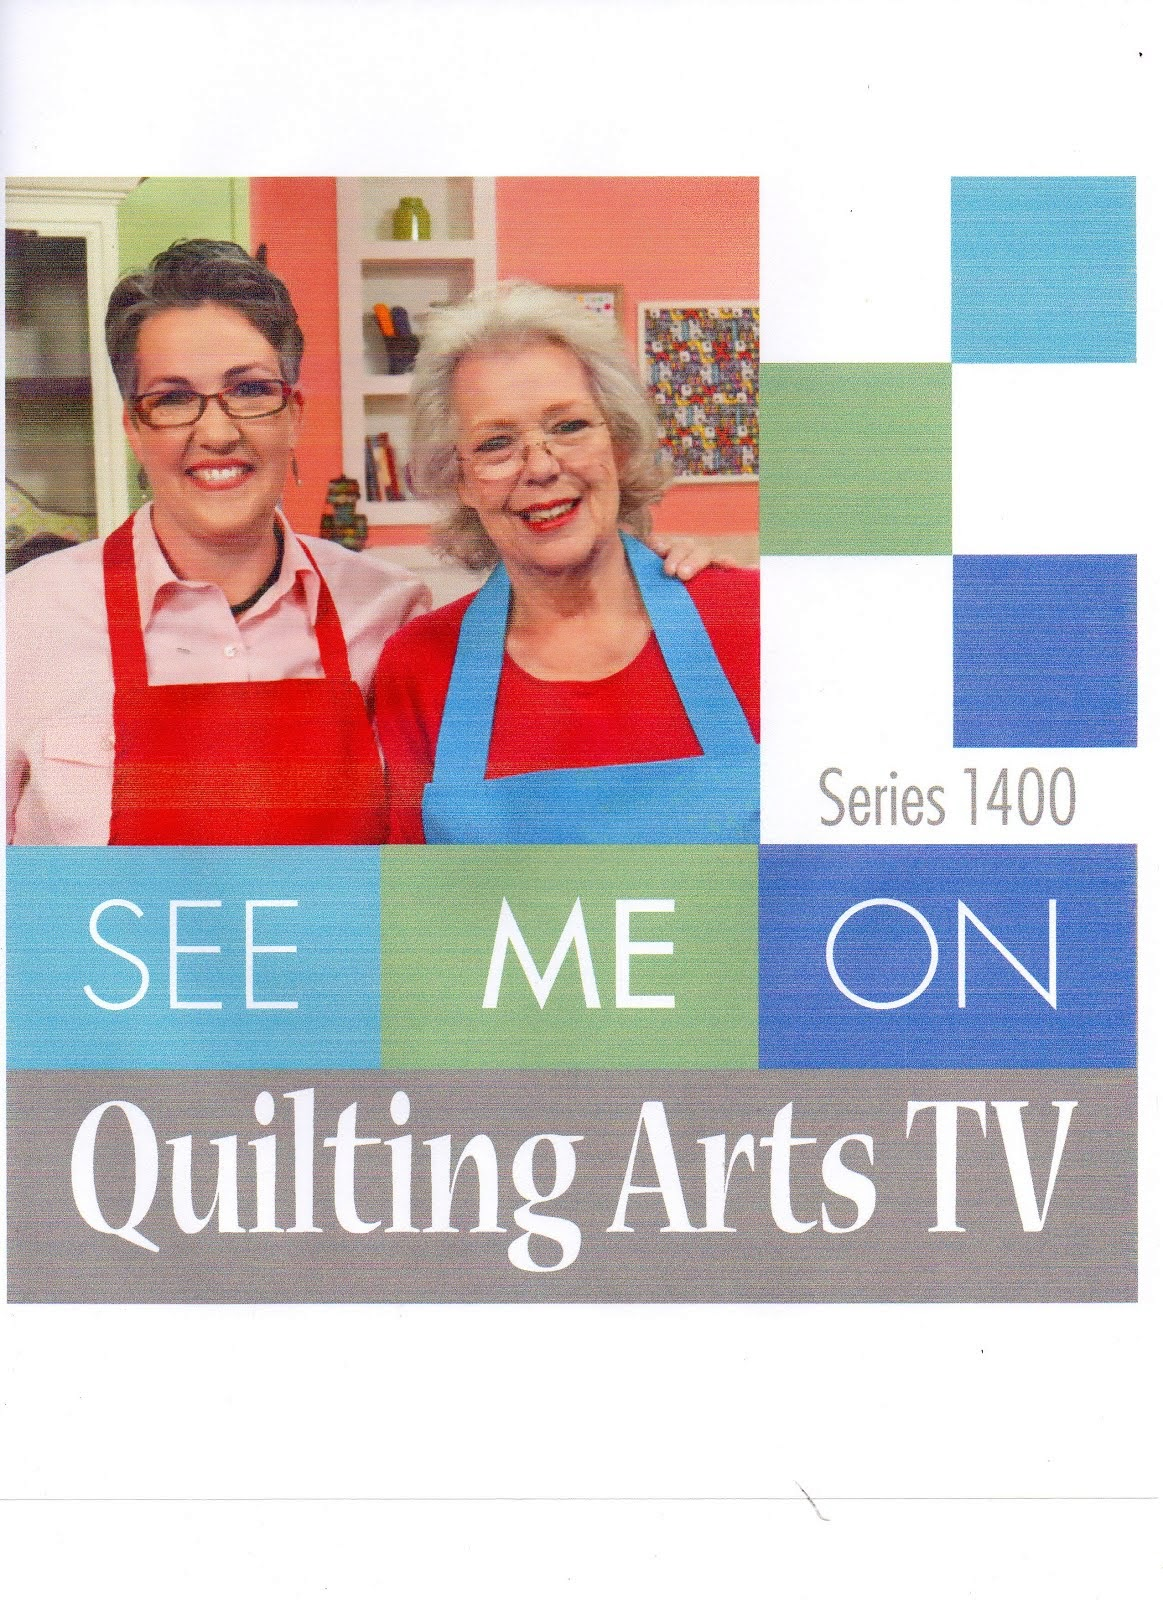 Quilting Arts TV Series 1400